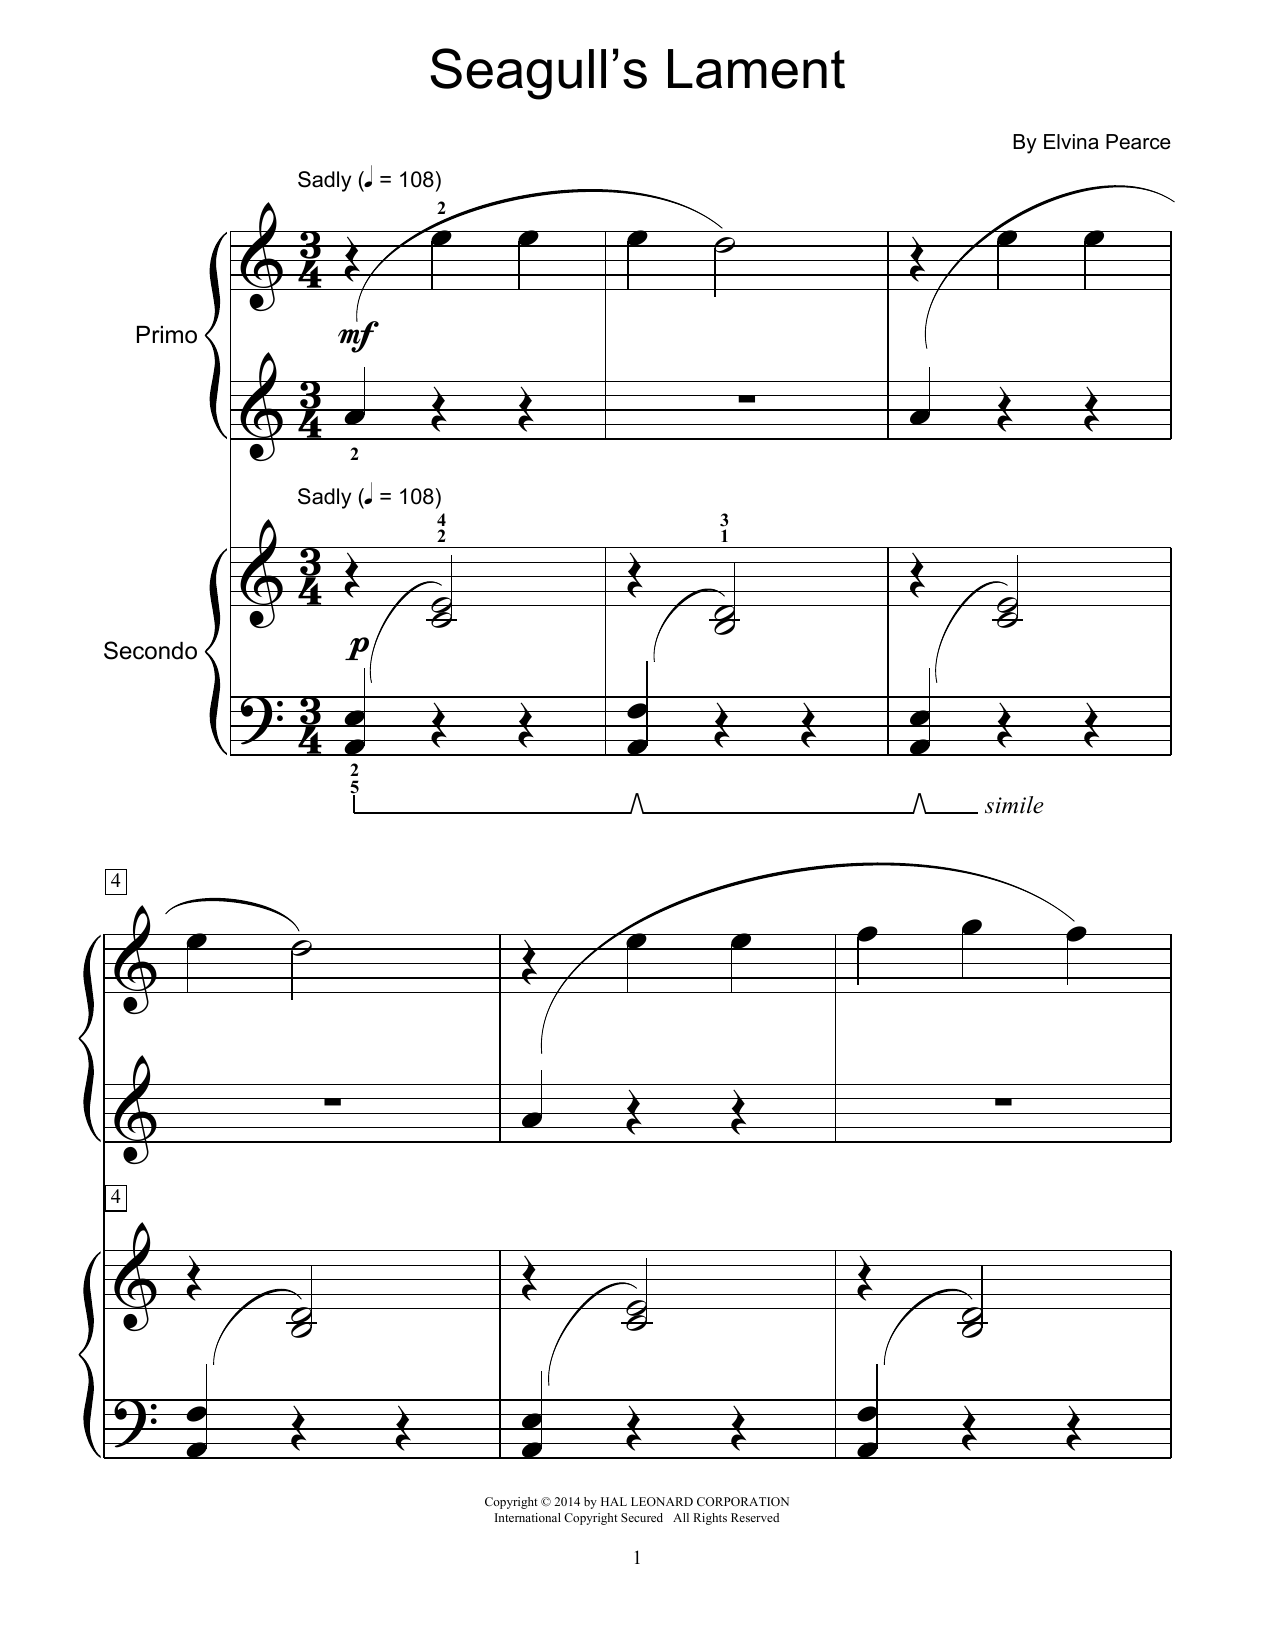 Seagull's Lament Sheet Music